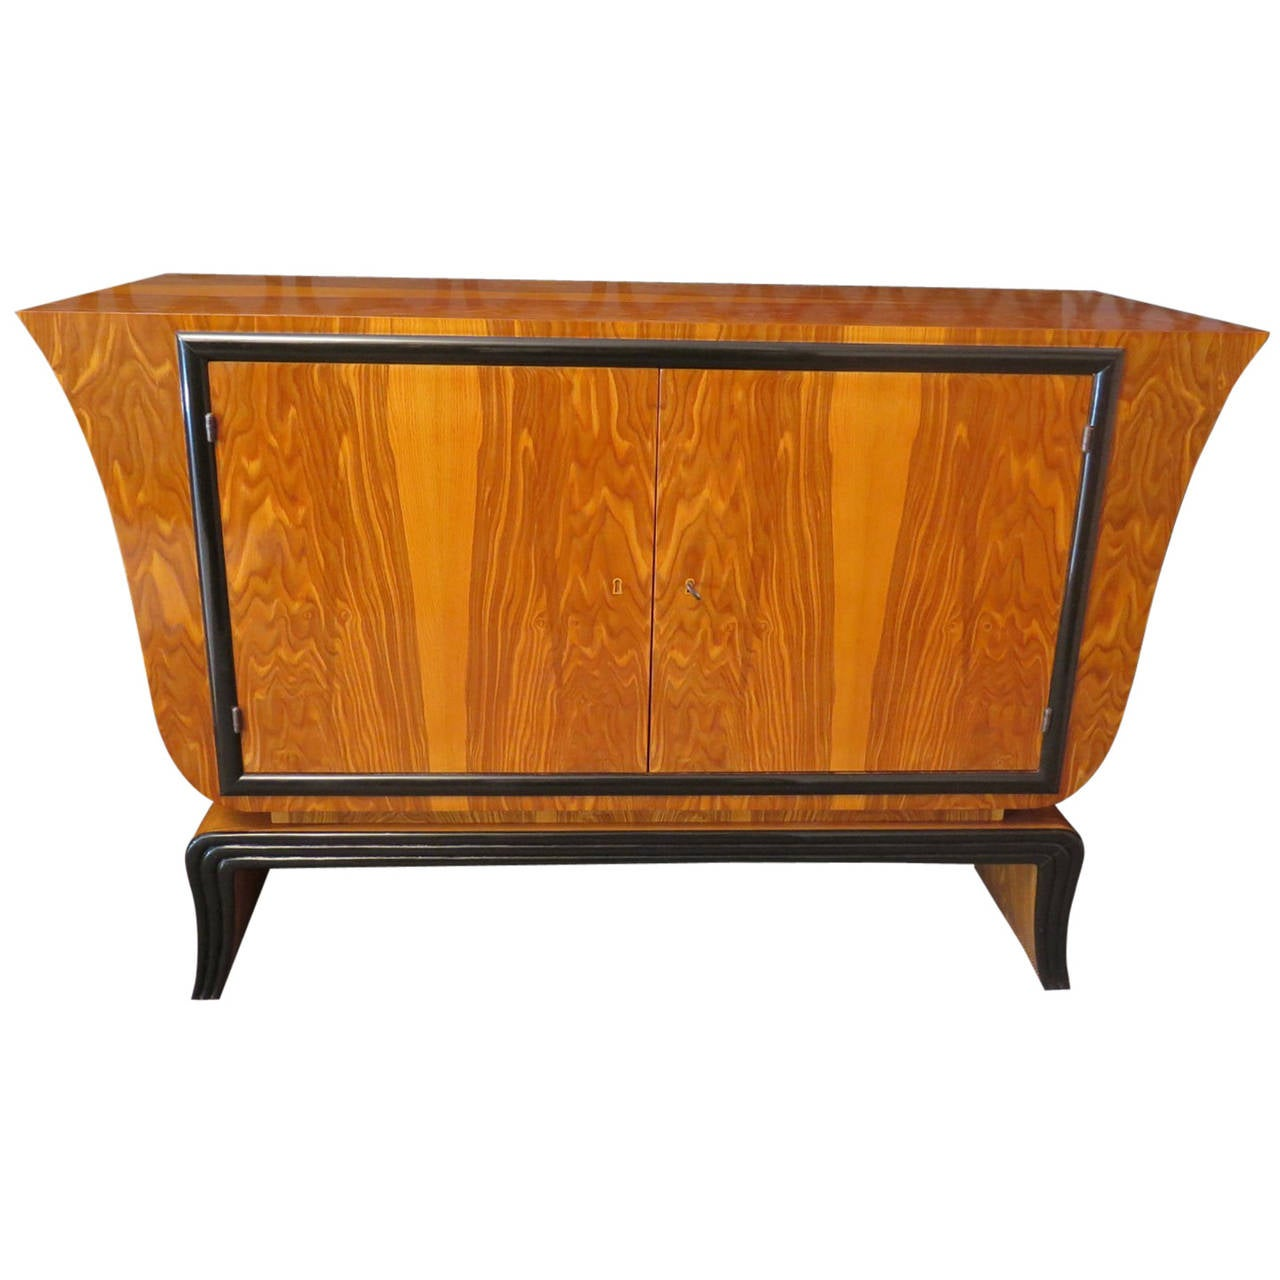 italian sideboard art deco at 1stdibs. Black Bedroom Furniture Sets. Home Design Ideas